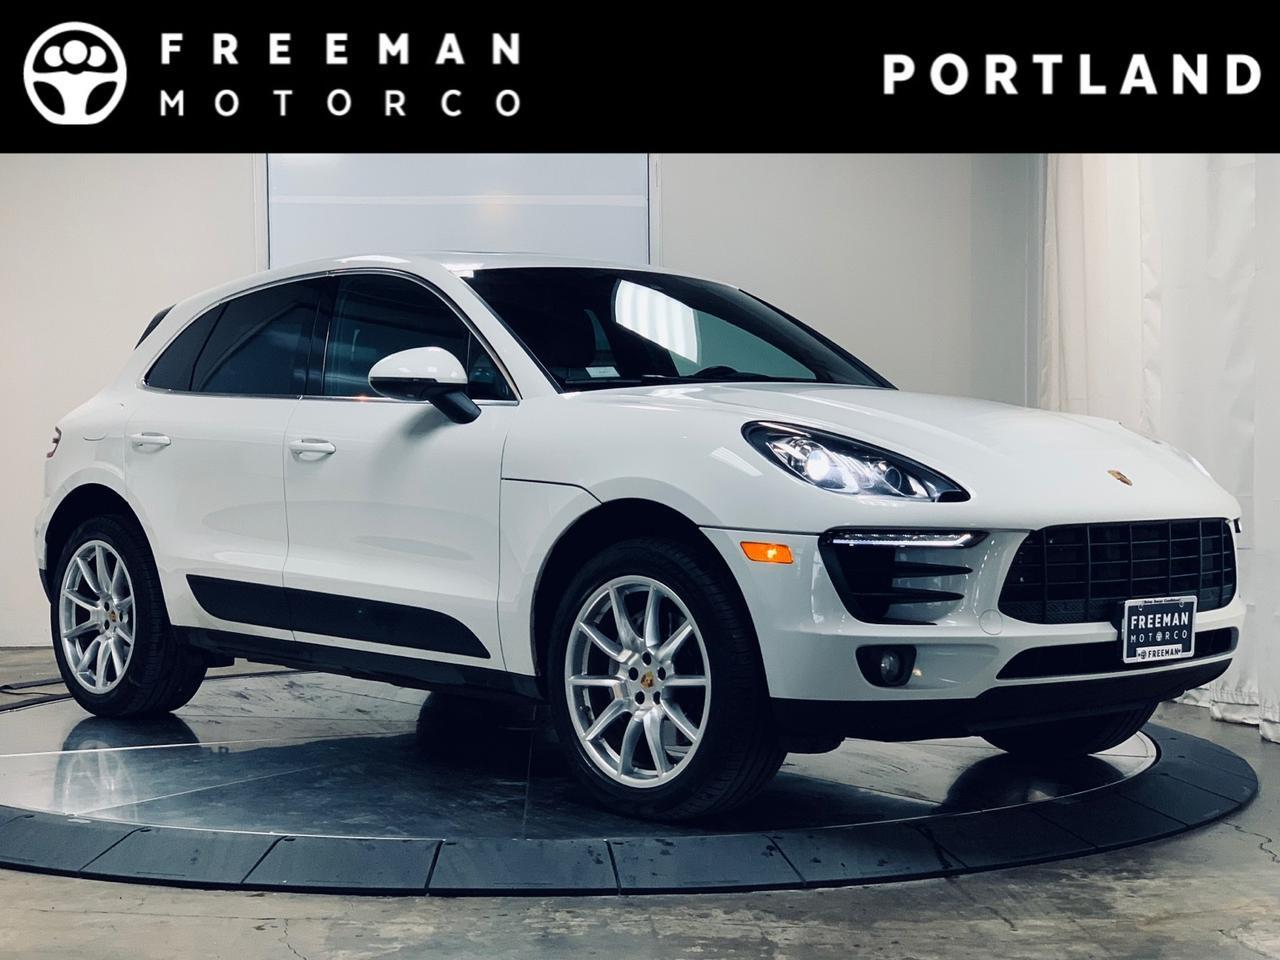 2018 Porsche Macan S AWD Pano Cooled Seats Apple CarPlay Portland OR